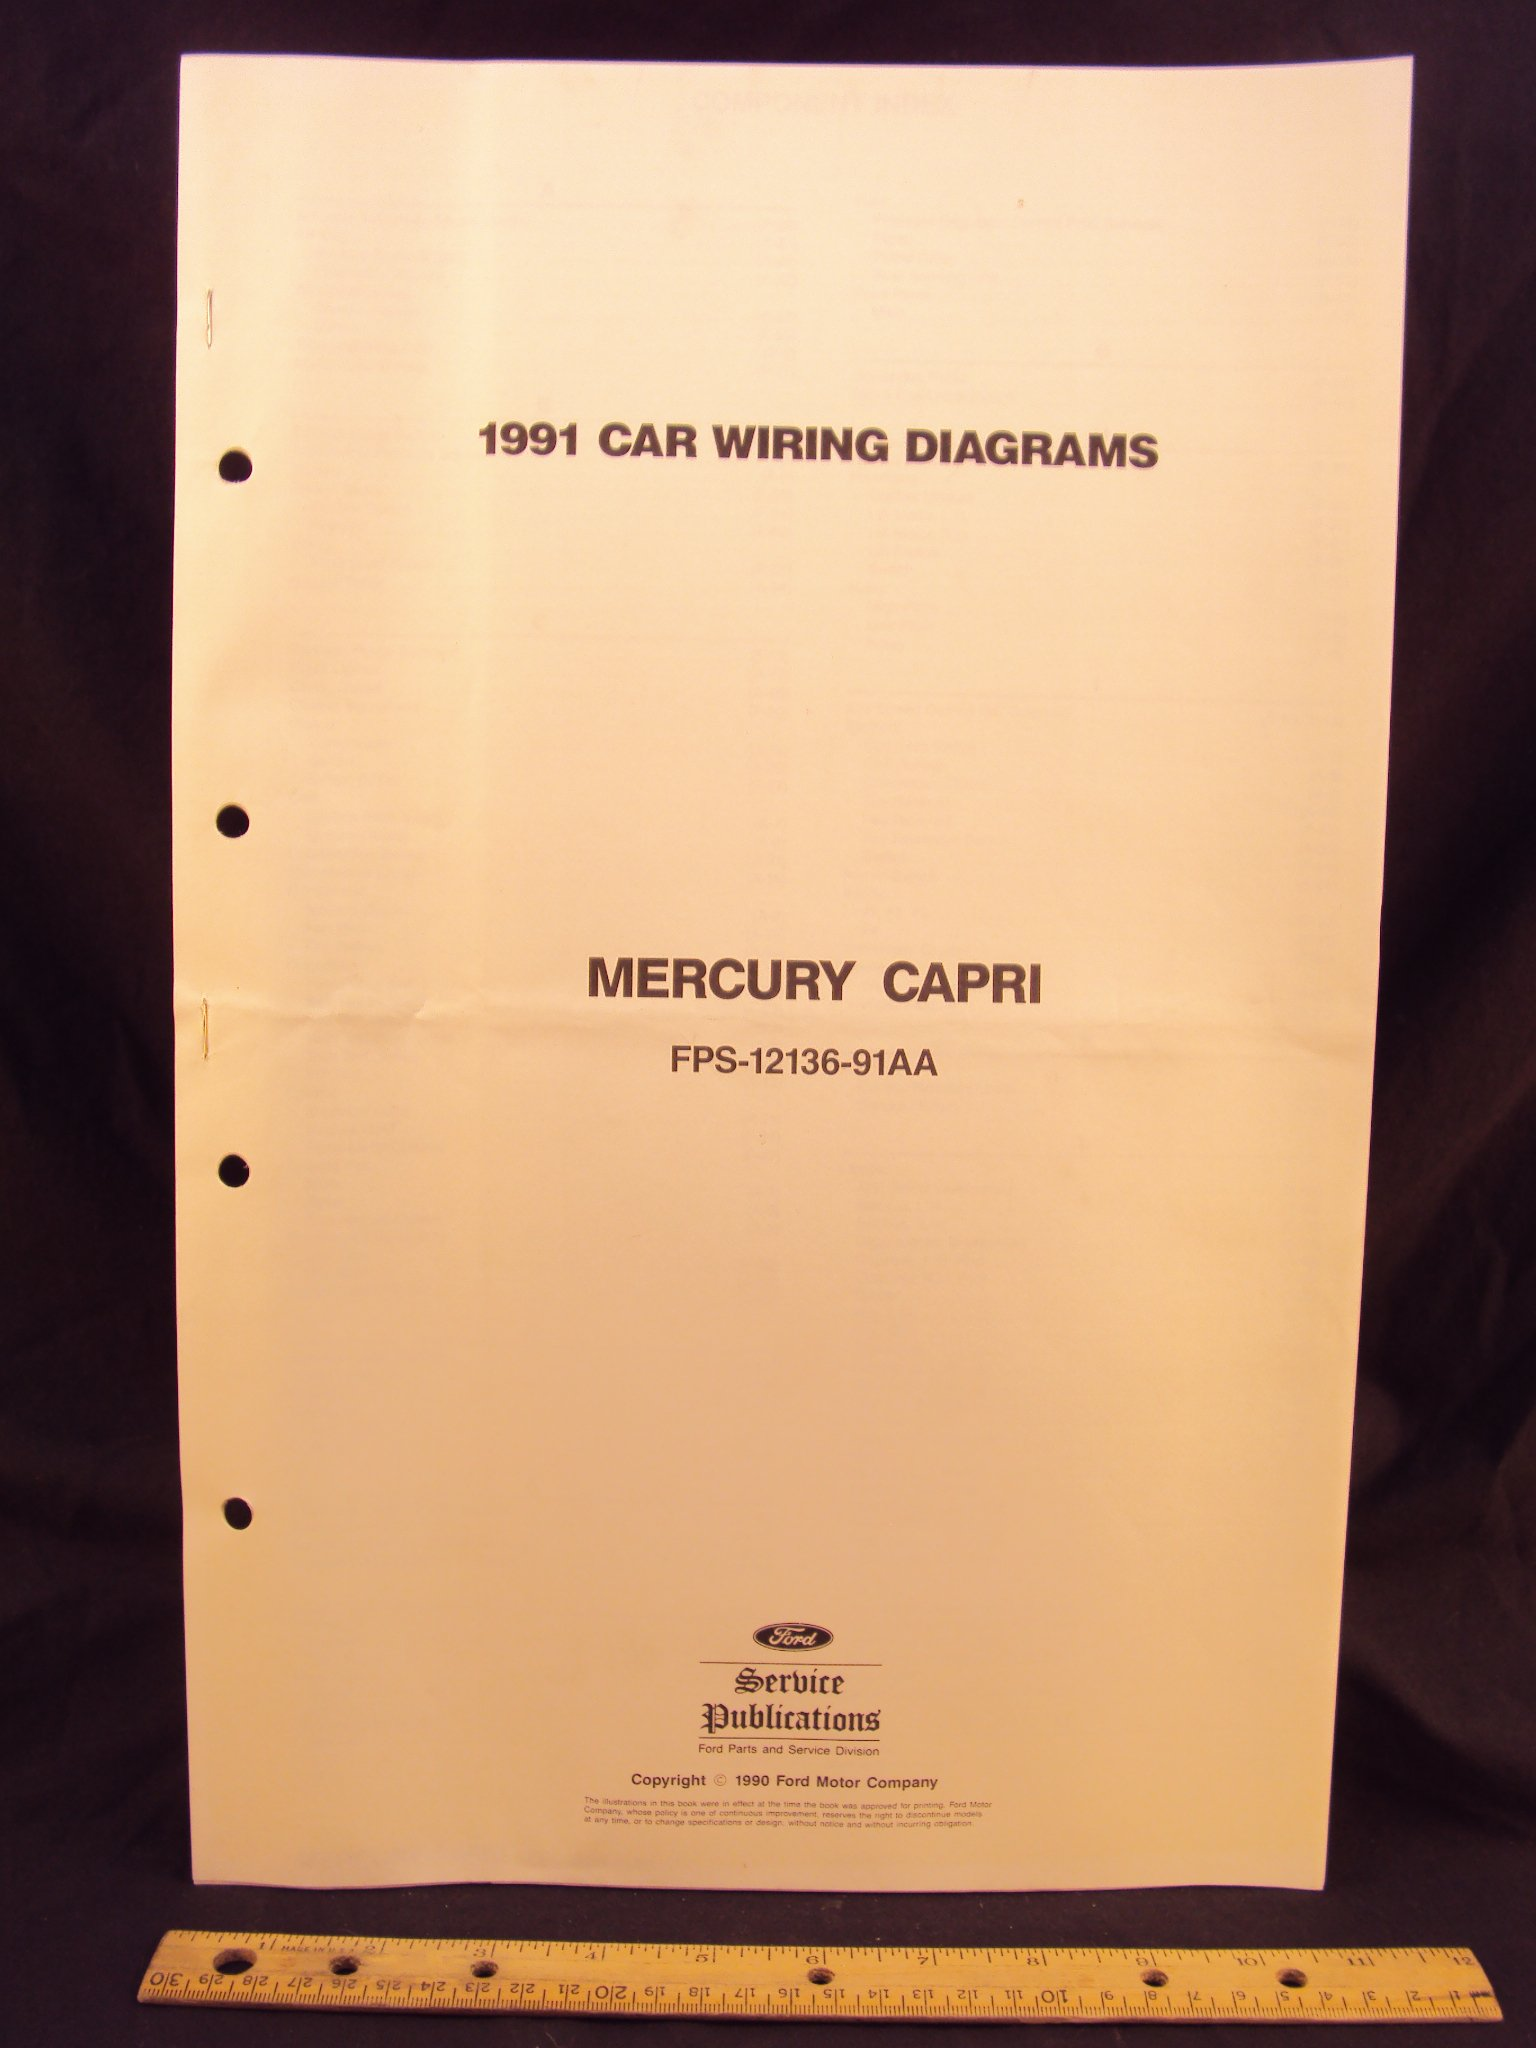 1991 mercury capri electrical wiring diagrams schematics ford Dodge Stealth Wiring-Diagram 1991 mercury capri electrical wiring diagrams schematics loose leaf \u2013 january 1, 1990